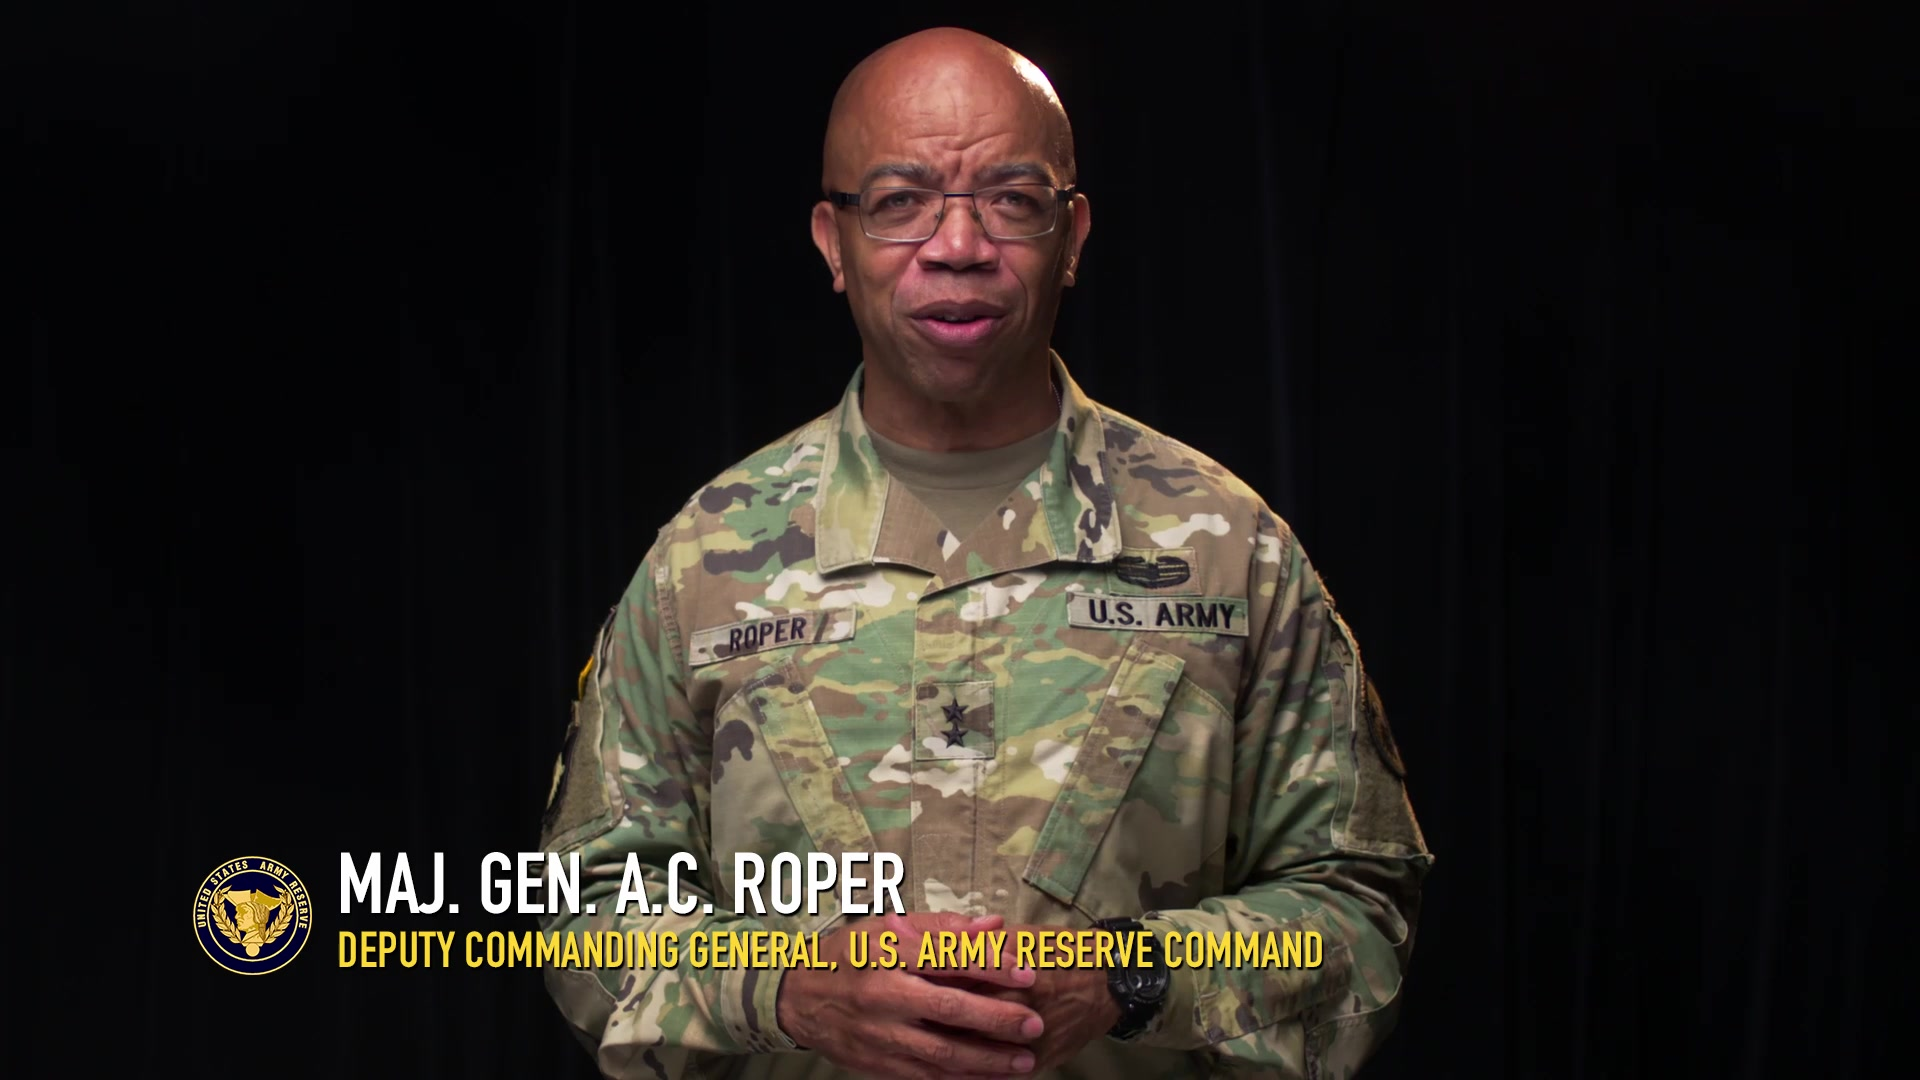 Maj. Gen. A.C. Roper, deputy commanding general U.S. Army Reserve, talks about the value of life of every U.S. Army Reserve Soldier and the importance of reflectively listening to the concerns and needs of others.